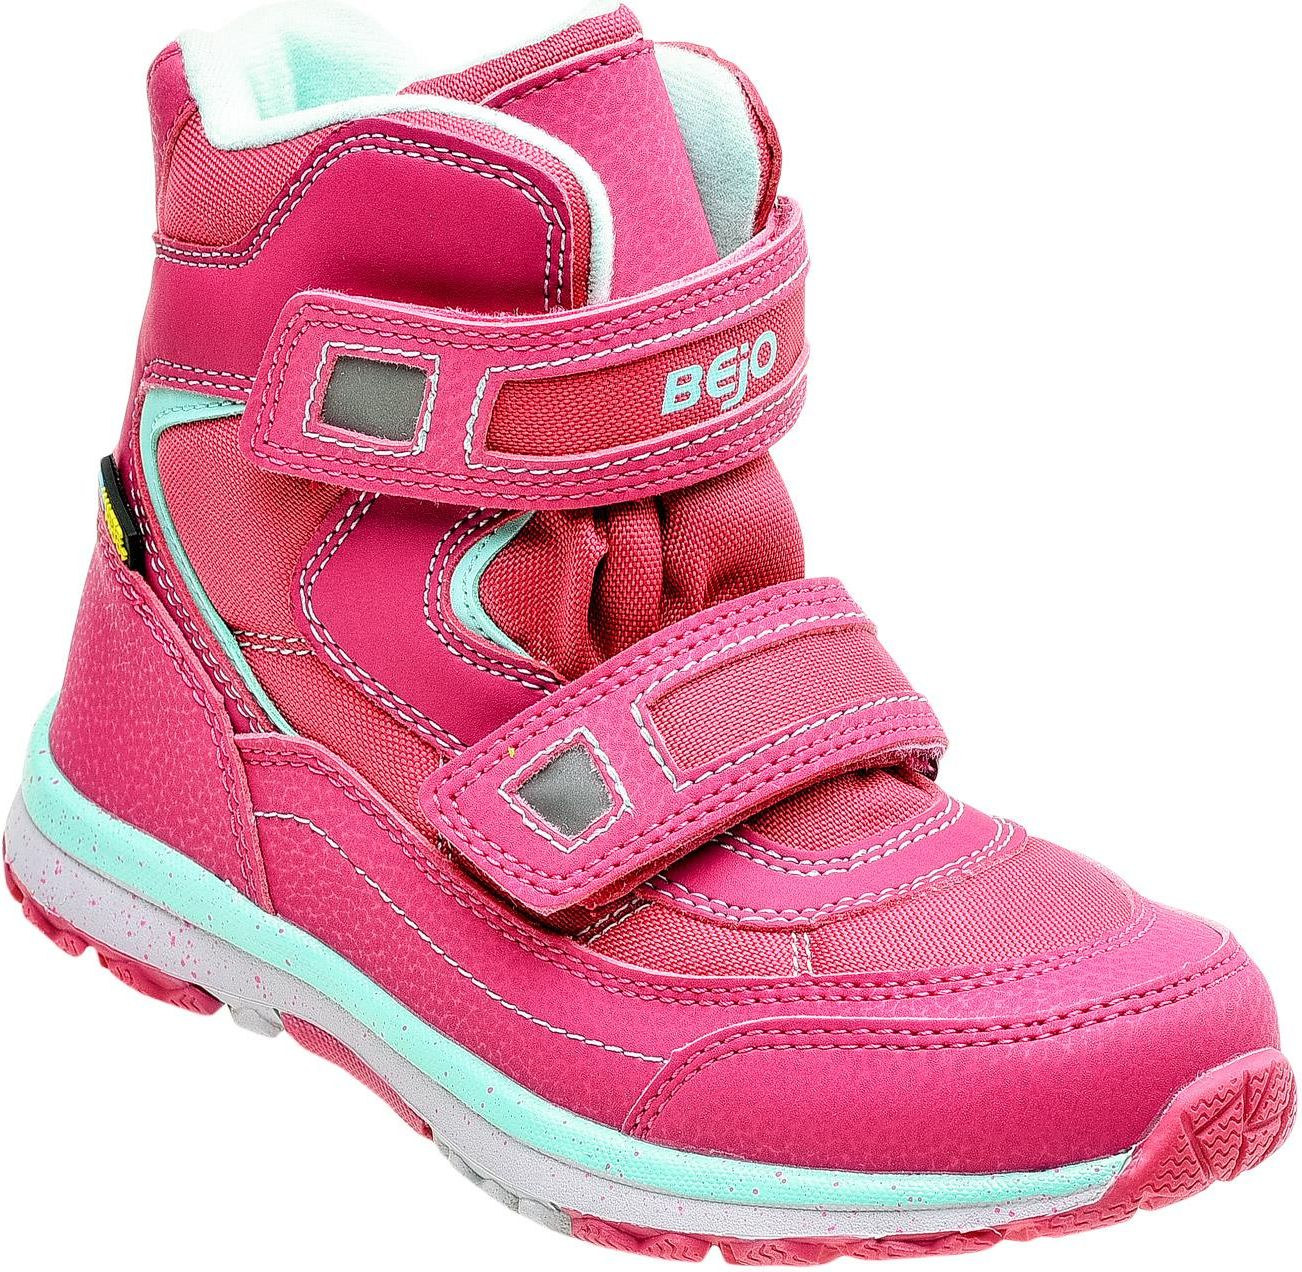 BEJO Buty dzieciece Piner Jr Fuchsia/dark Fuchsia/mint Green r. 29 5264522